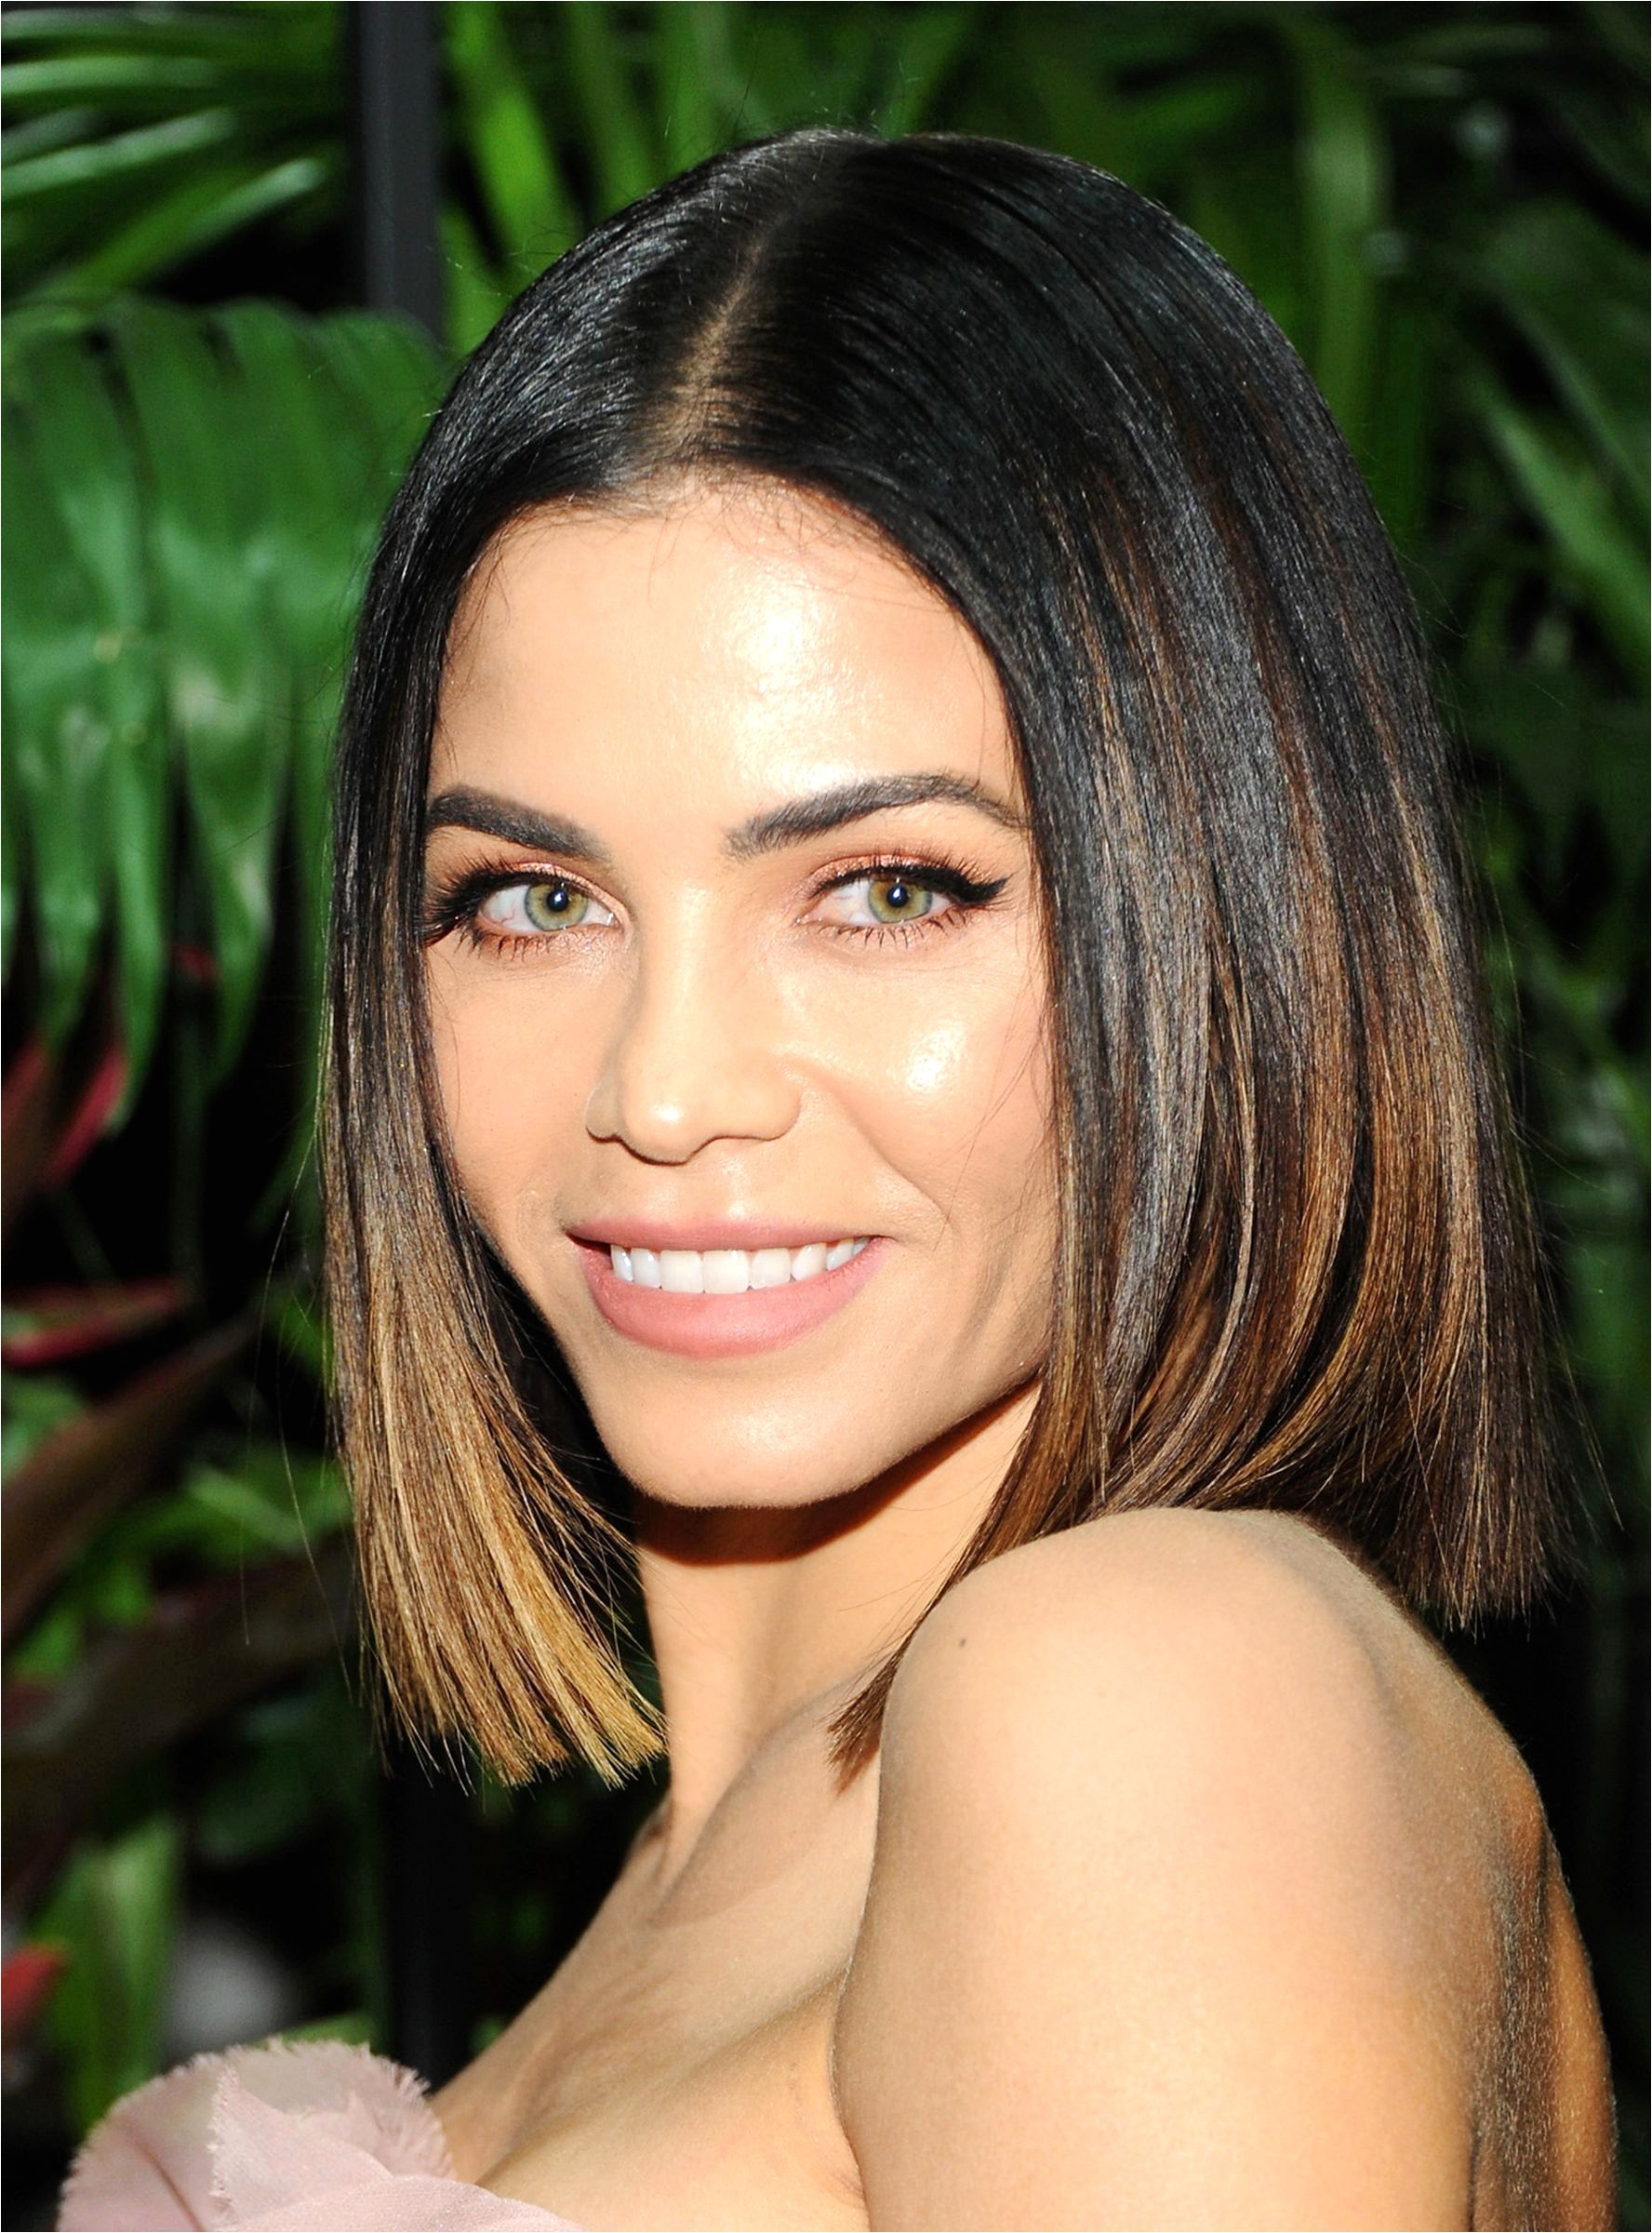 Hairstyle for Oval Face Girl Beautiful Hairstyles for Short Hair Round Face Lovely Extraordinary Hairstyles